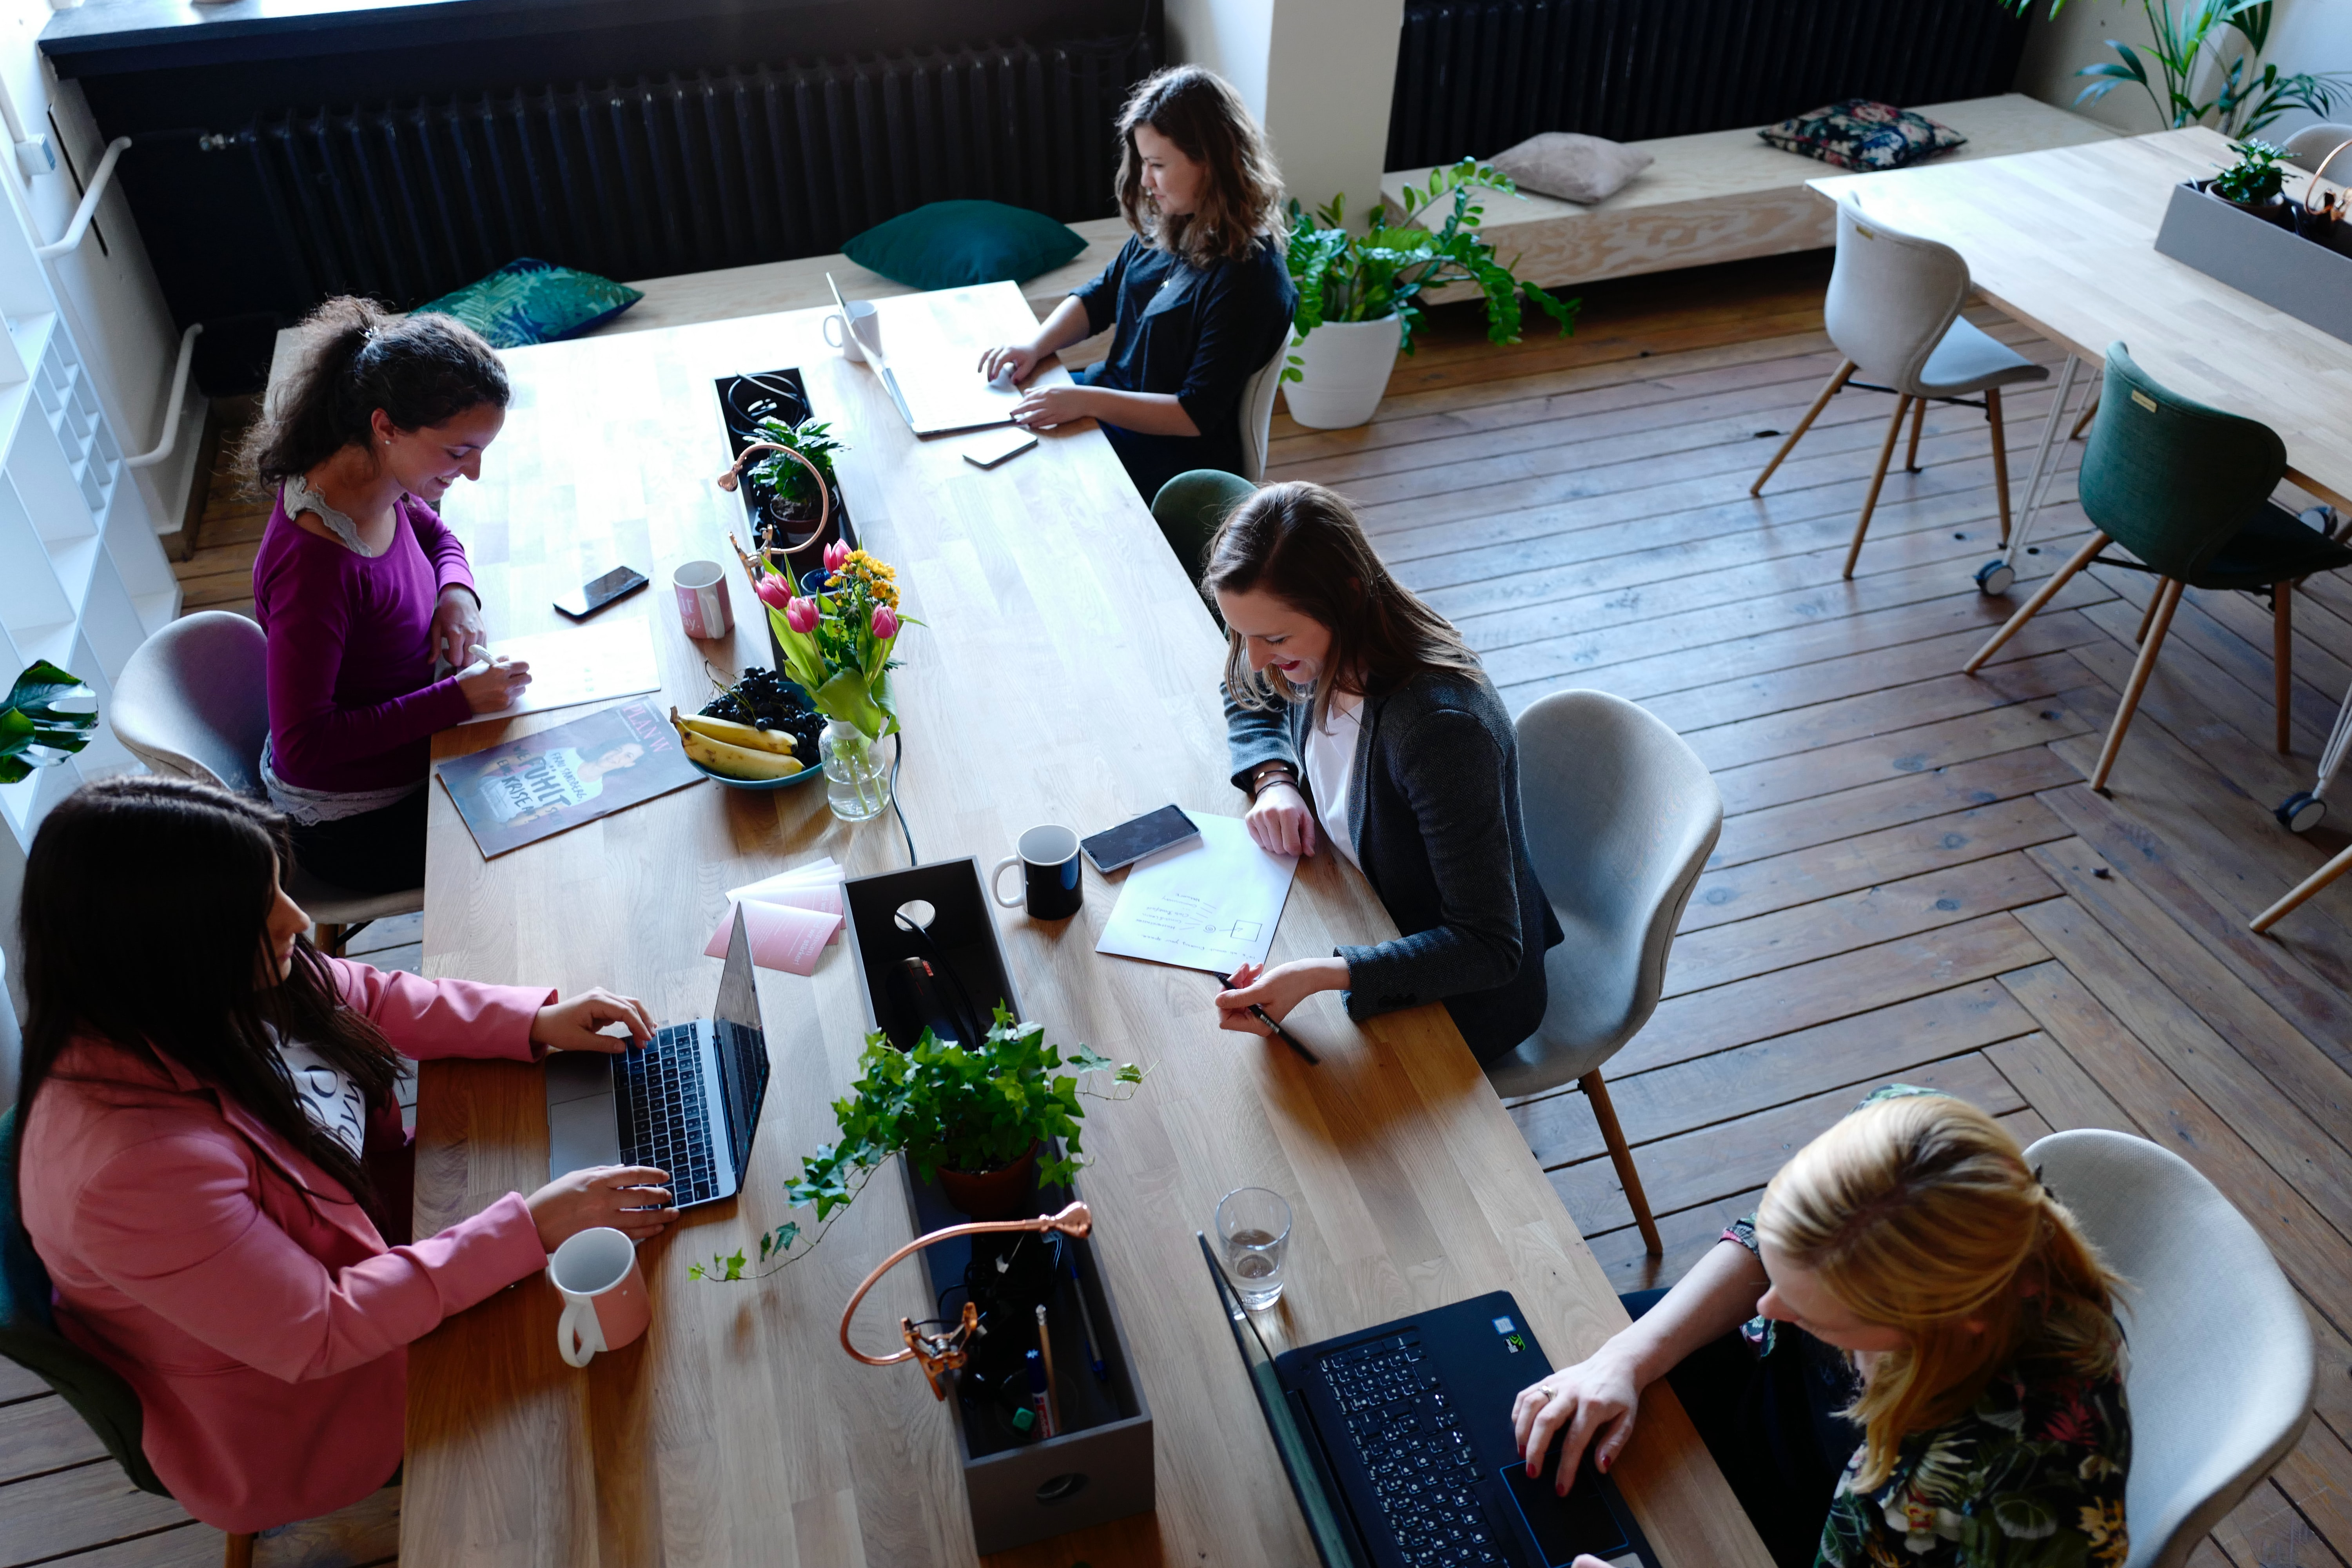 Why you should go on a coworking trip.